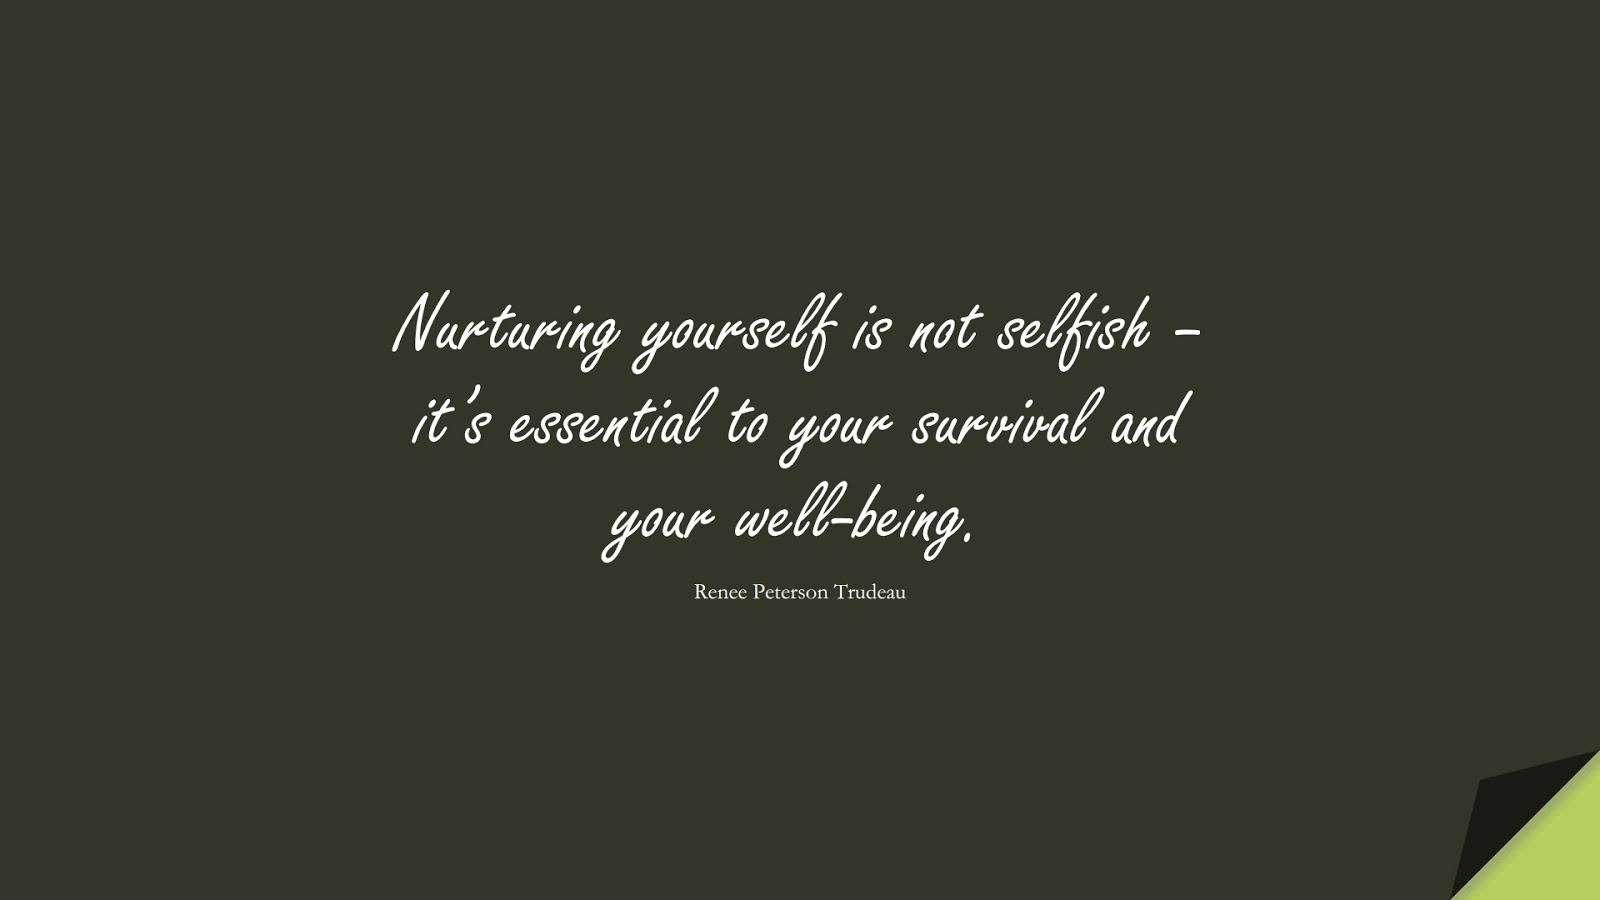 Nurturing yourself is not selfish – it's essential to your survival and your well-being. (Renee Peterson Trudeau);  #HealthQuotes